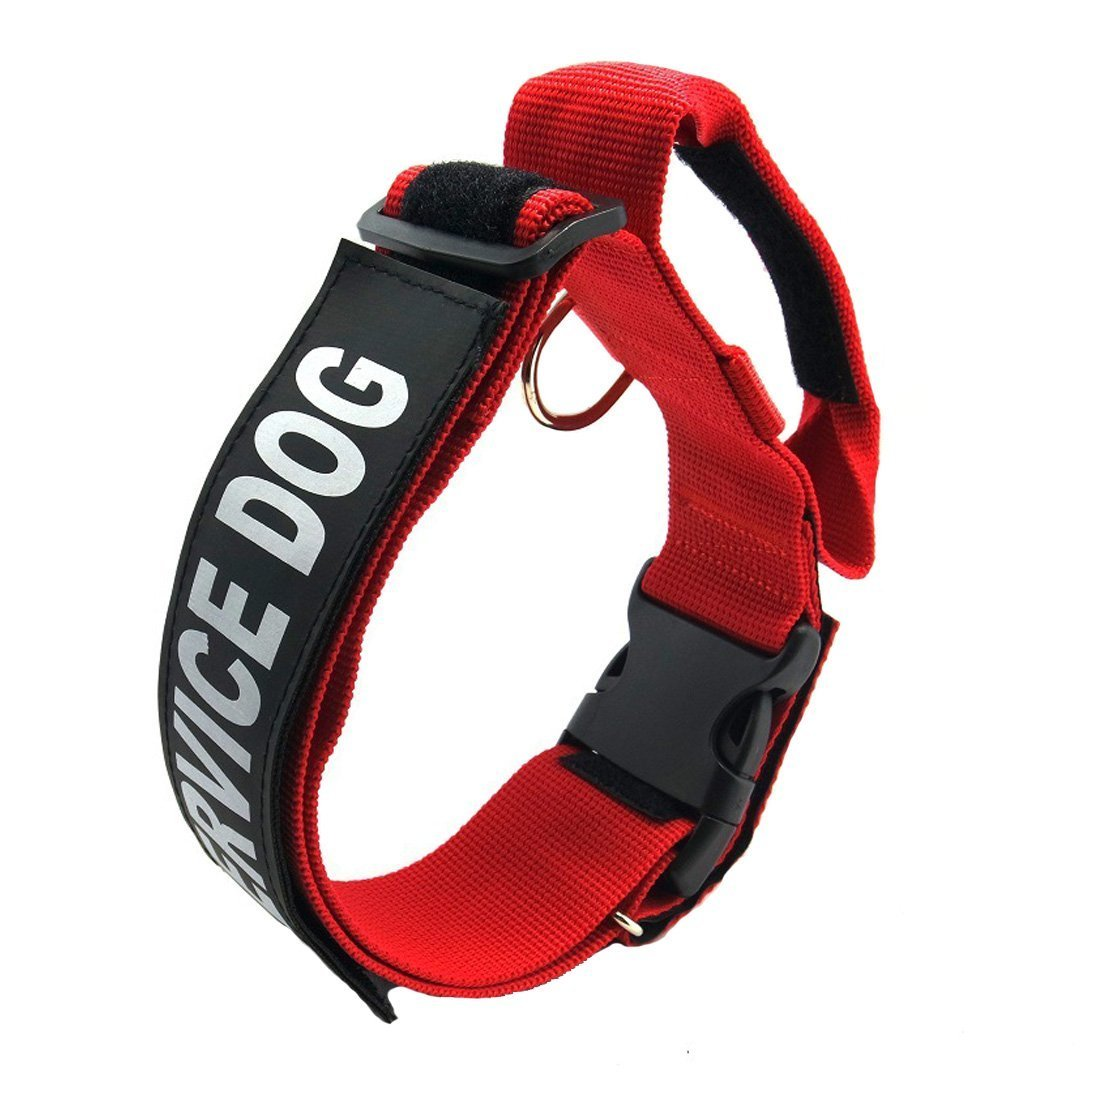 GrayCell K9 Service Dog Collar, Adjustable Nylon Dog Collar with Reflective''SERVICE DOG'' Velcro Patches for Small Medium Large Dogs (L, Red)